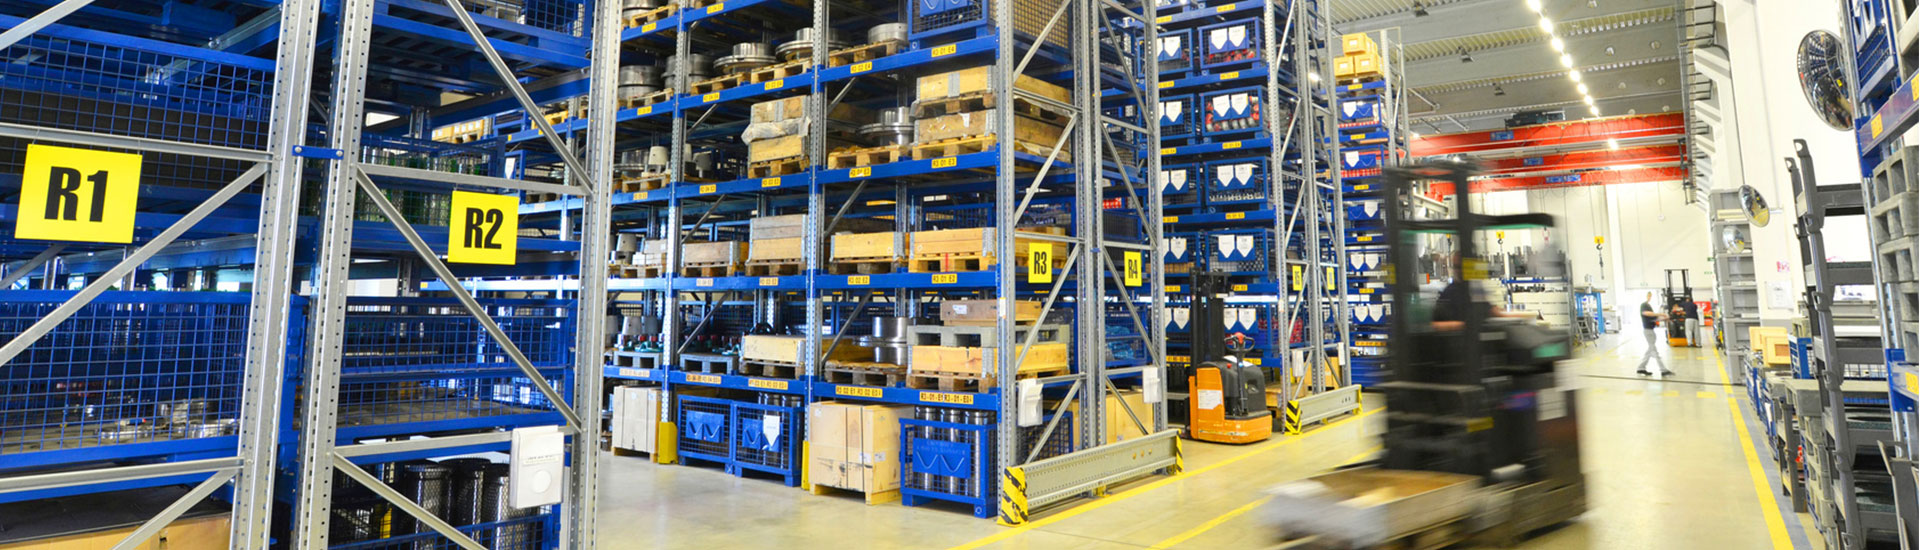 Warehouse Management - Consulting Services | Westernacher Consulting